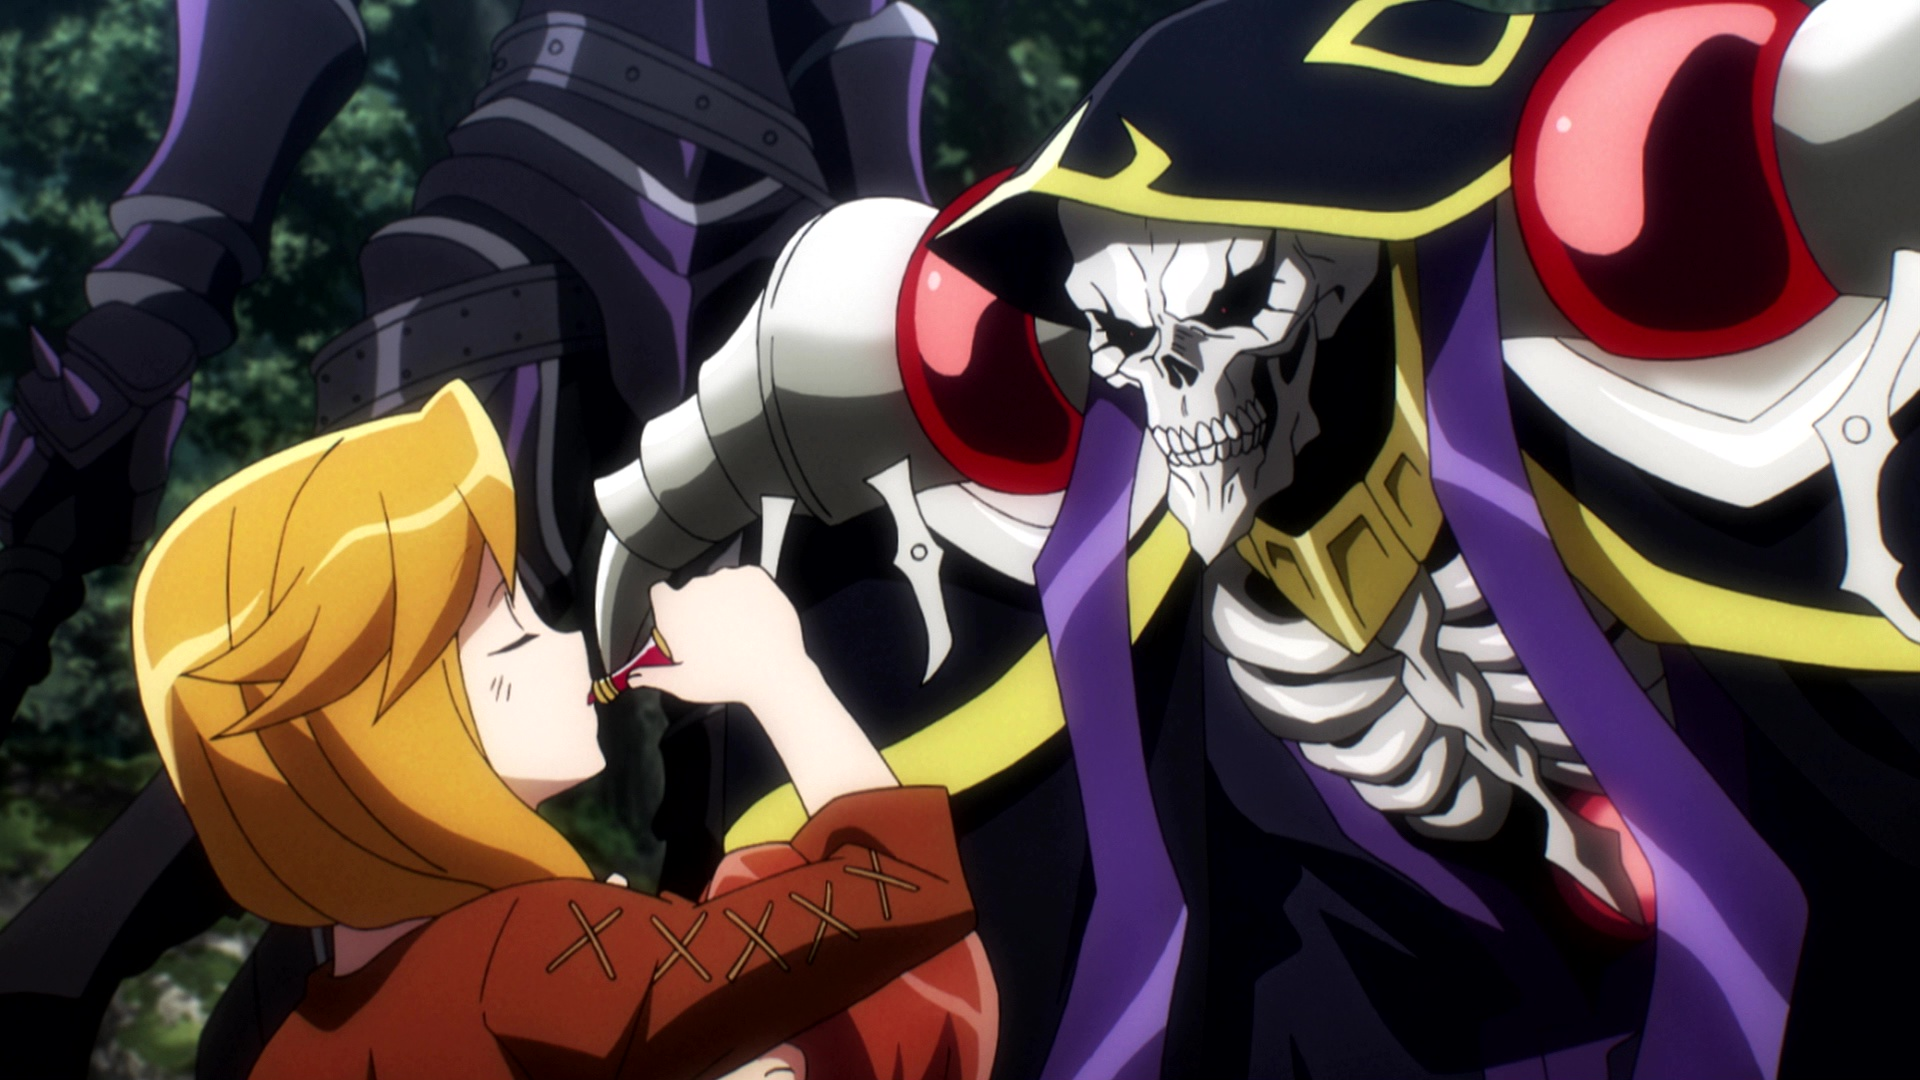 Watch Overlord Season 1 Episode 3 Sub & Dub | Anime Simulcast